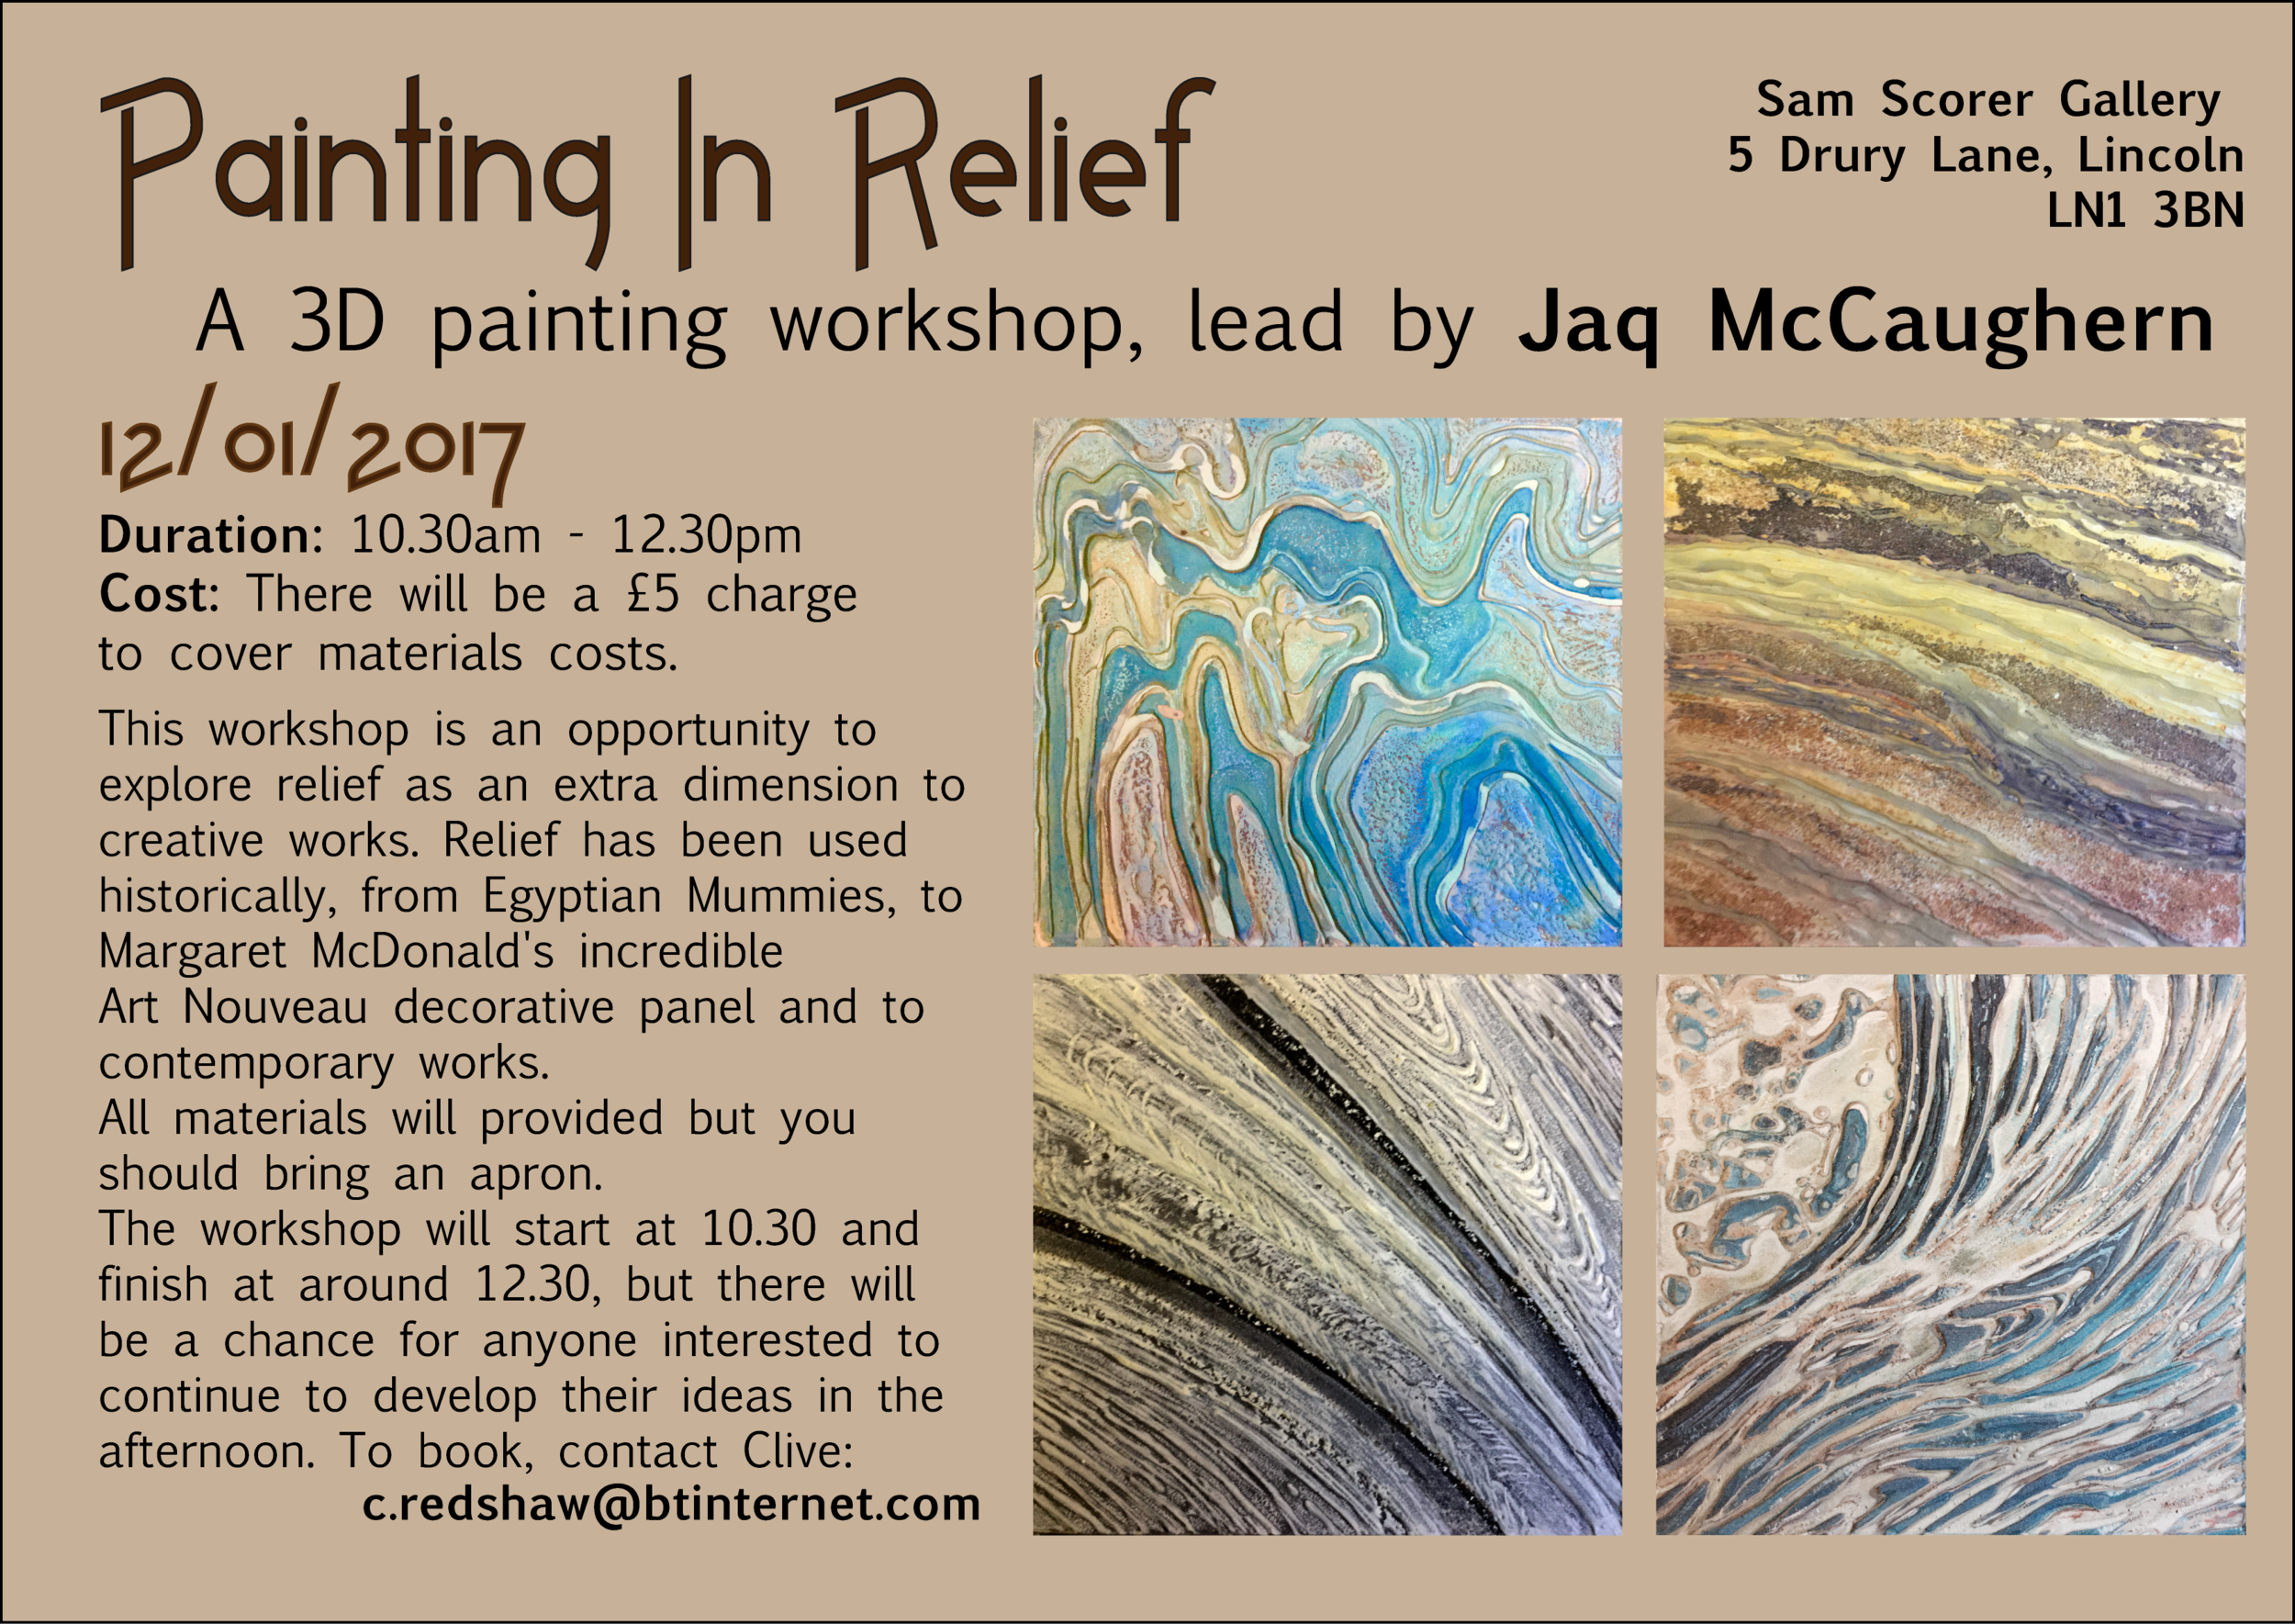 PaintinginReliefWorkshop